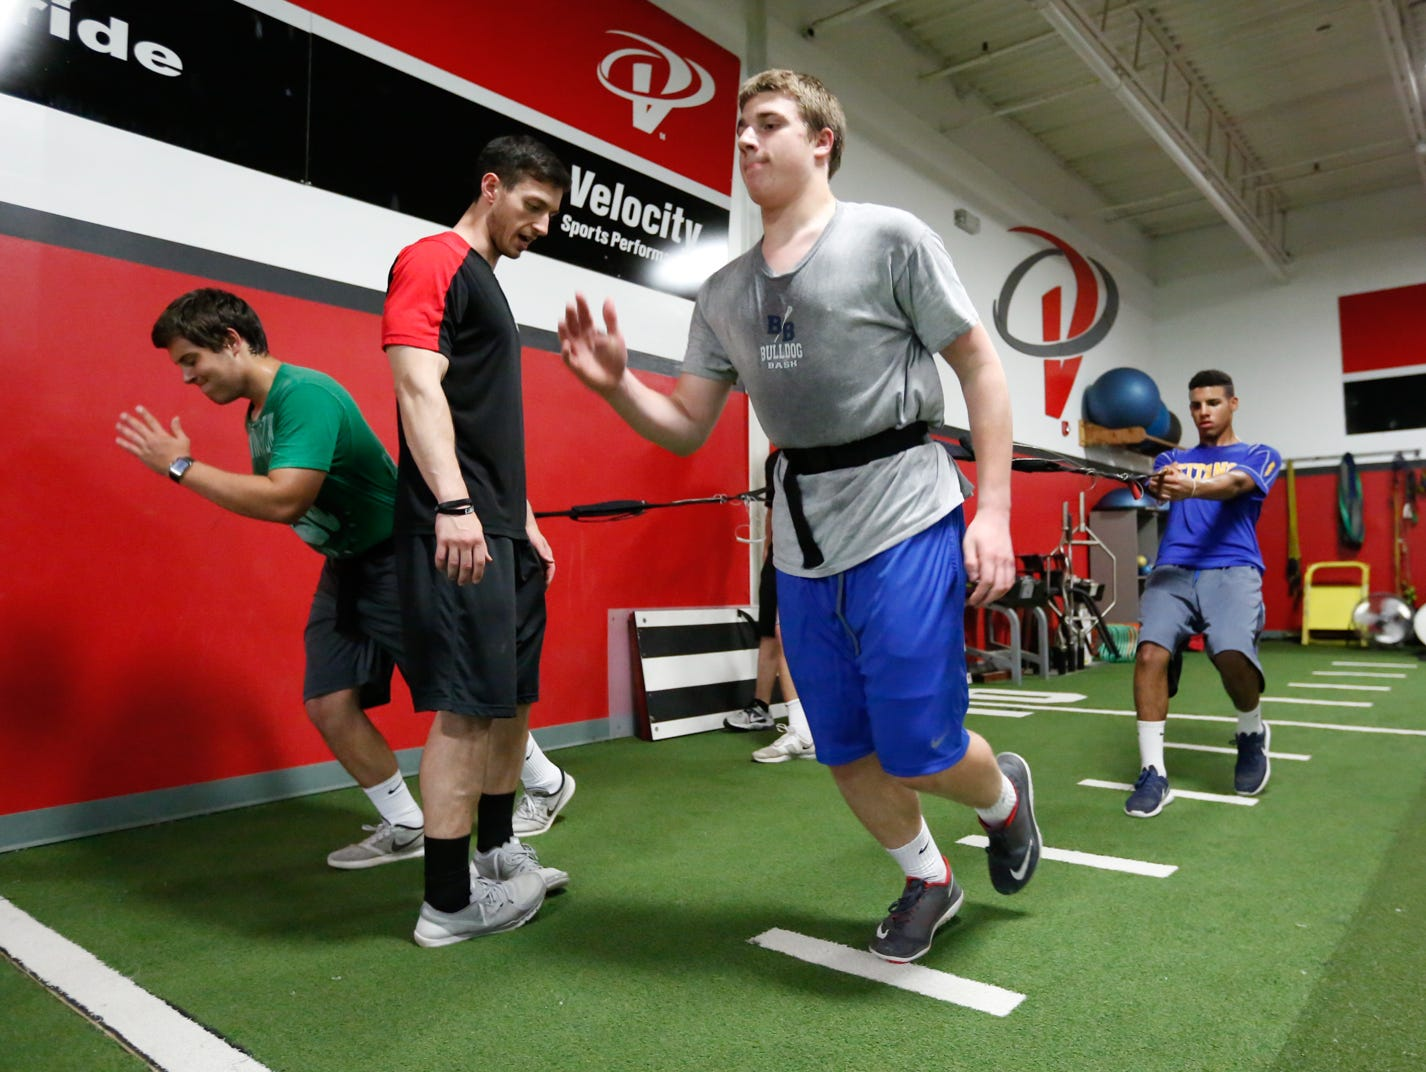 High school and college athletes work out at Velocity Sports Performance in Elmsford on Wednesday, June 01, 2016.